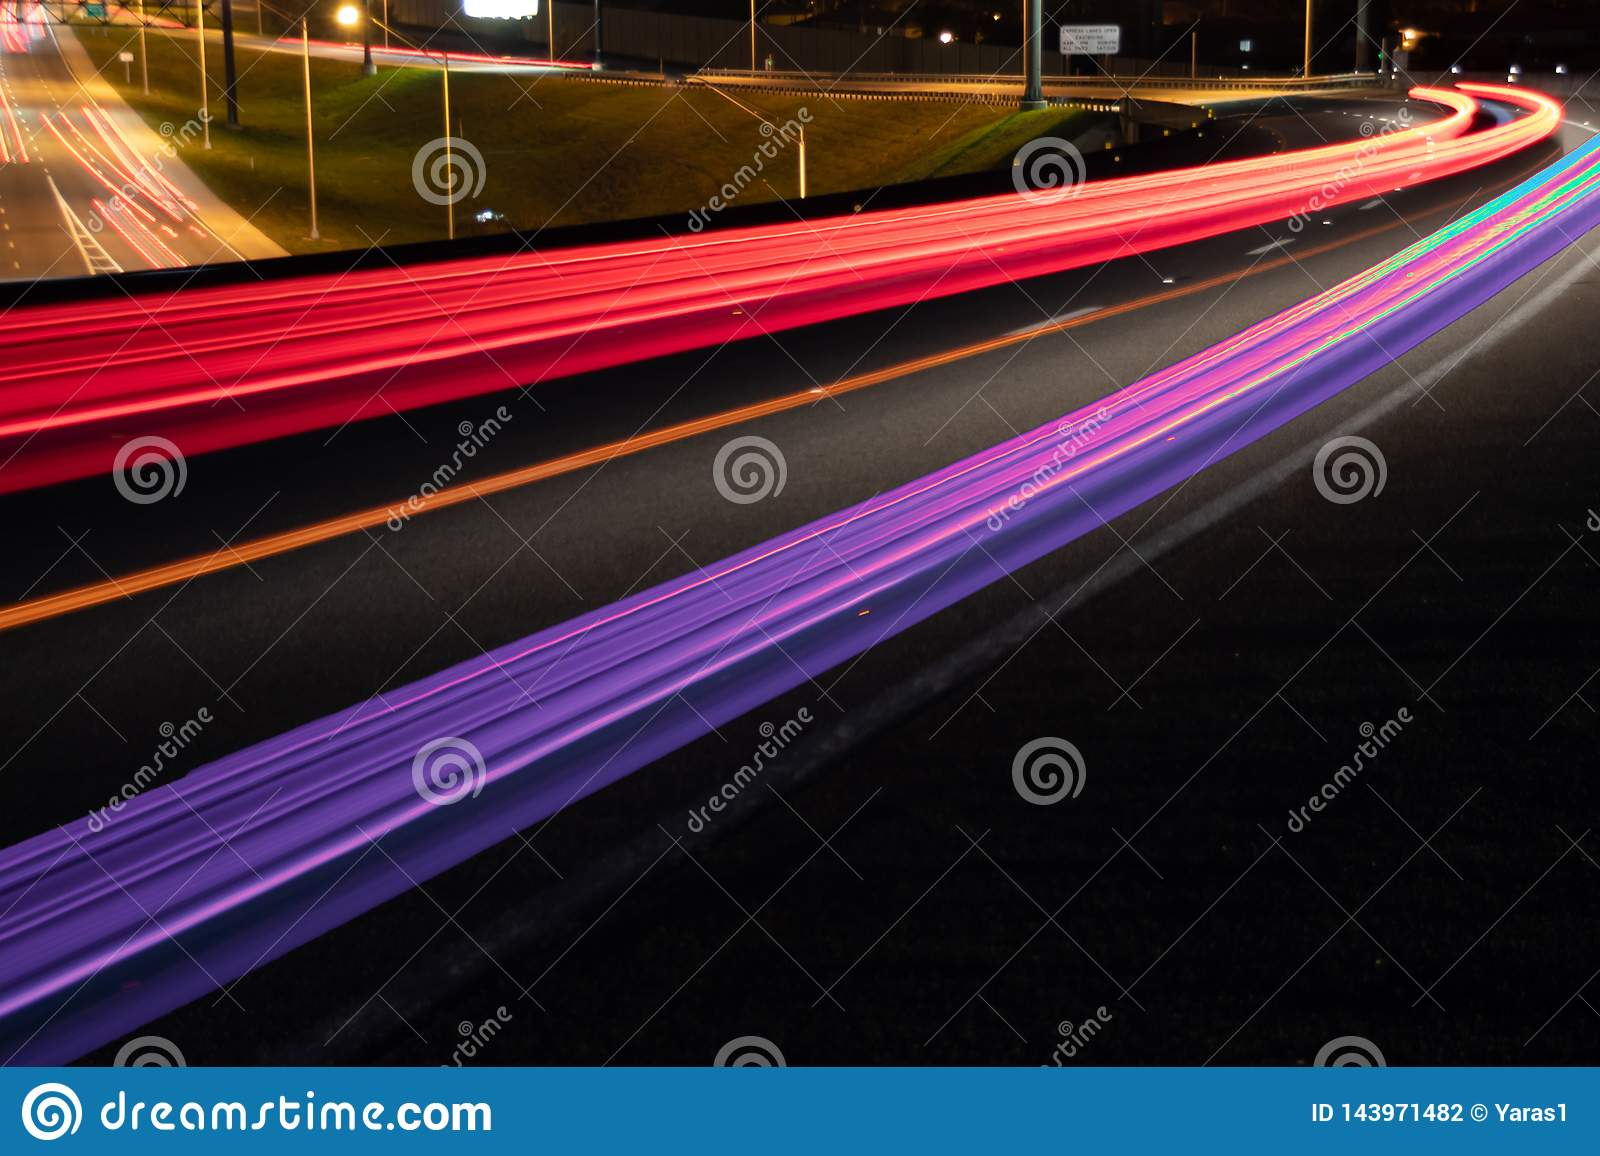 Car light trails on Interstate 75 at night time. Art image.